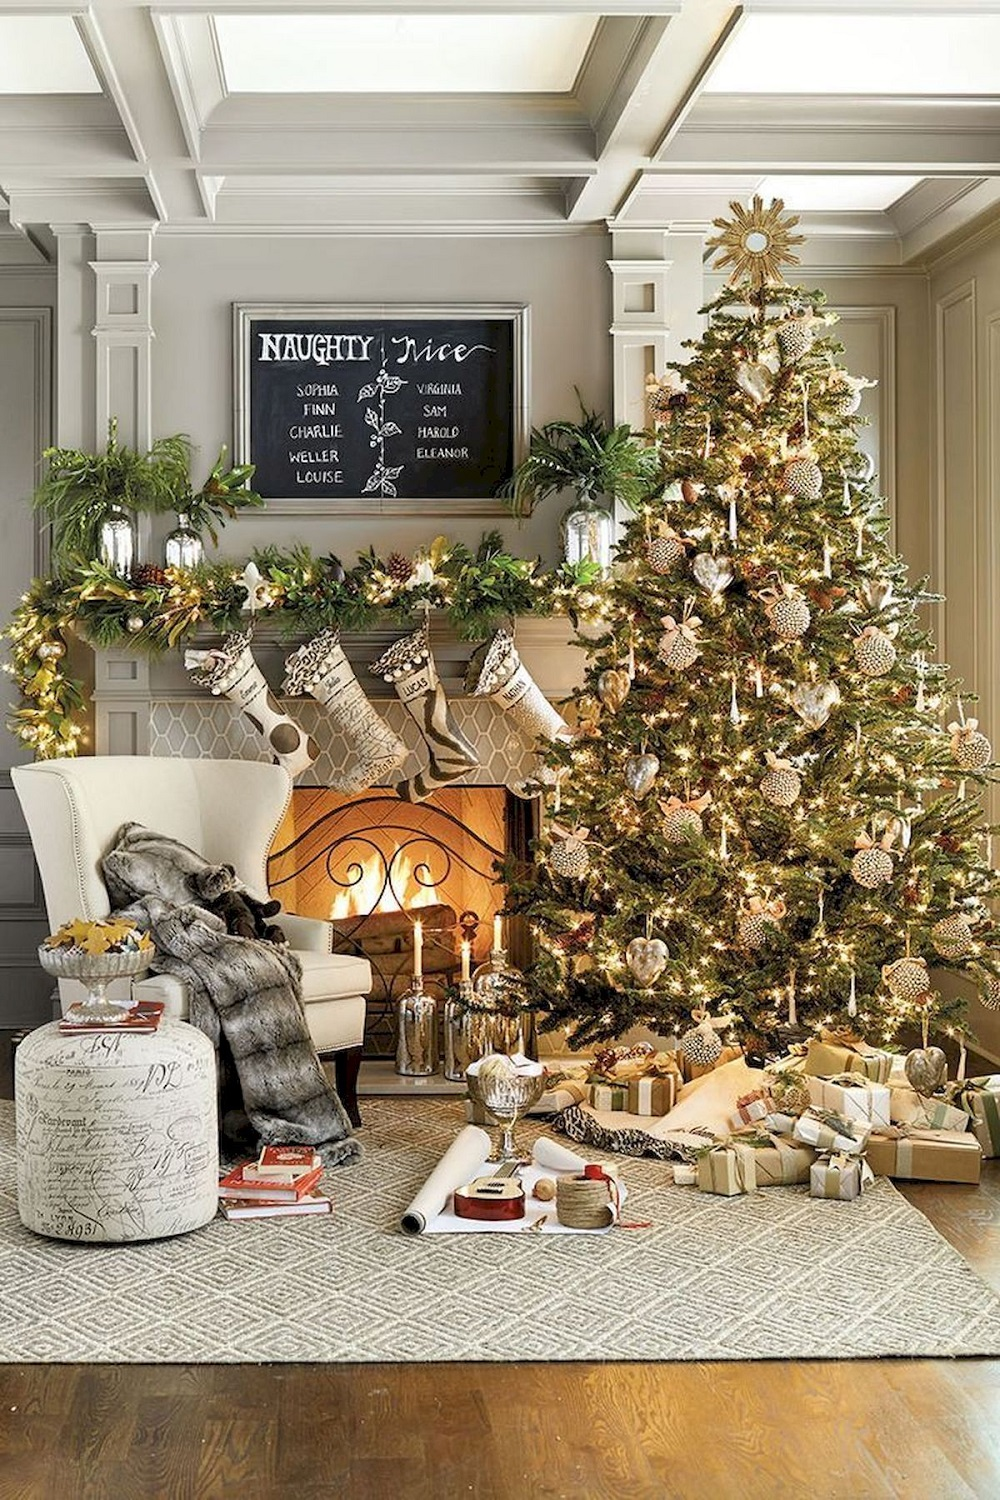 t4-11 Modern Christmas decoration ideas that are heartwarming